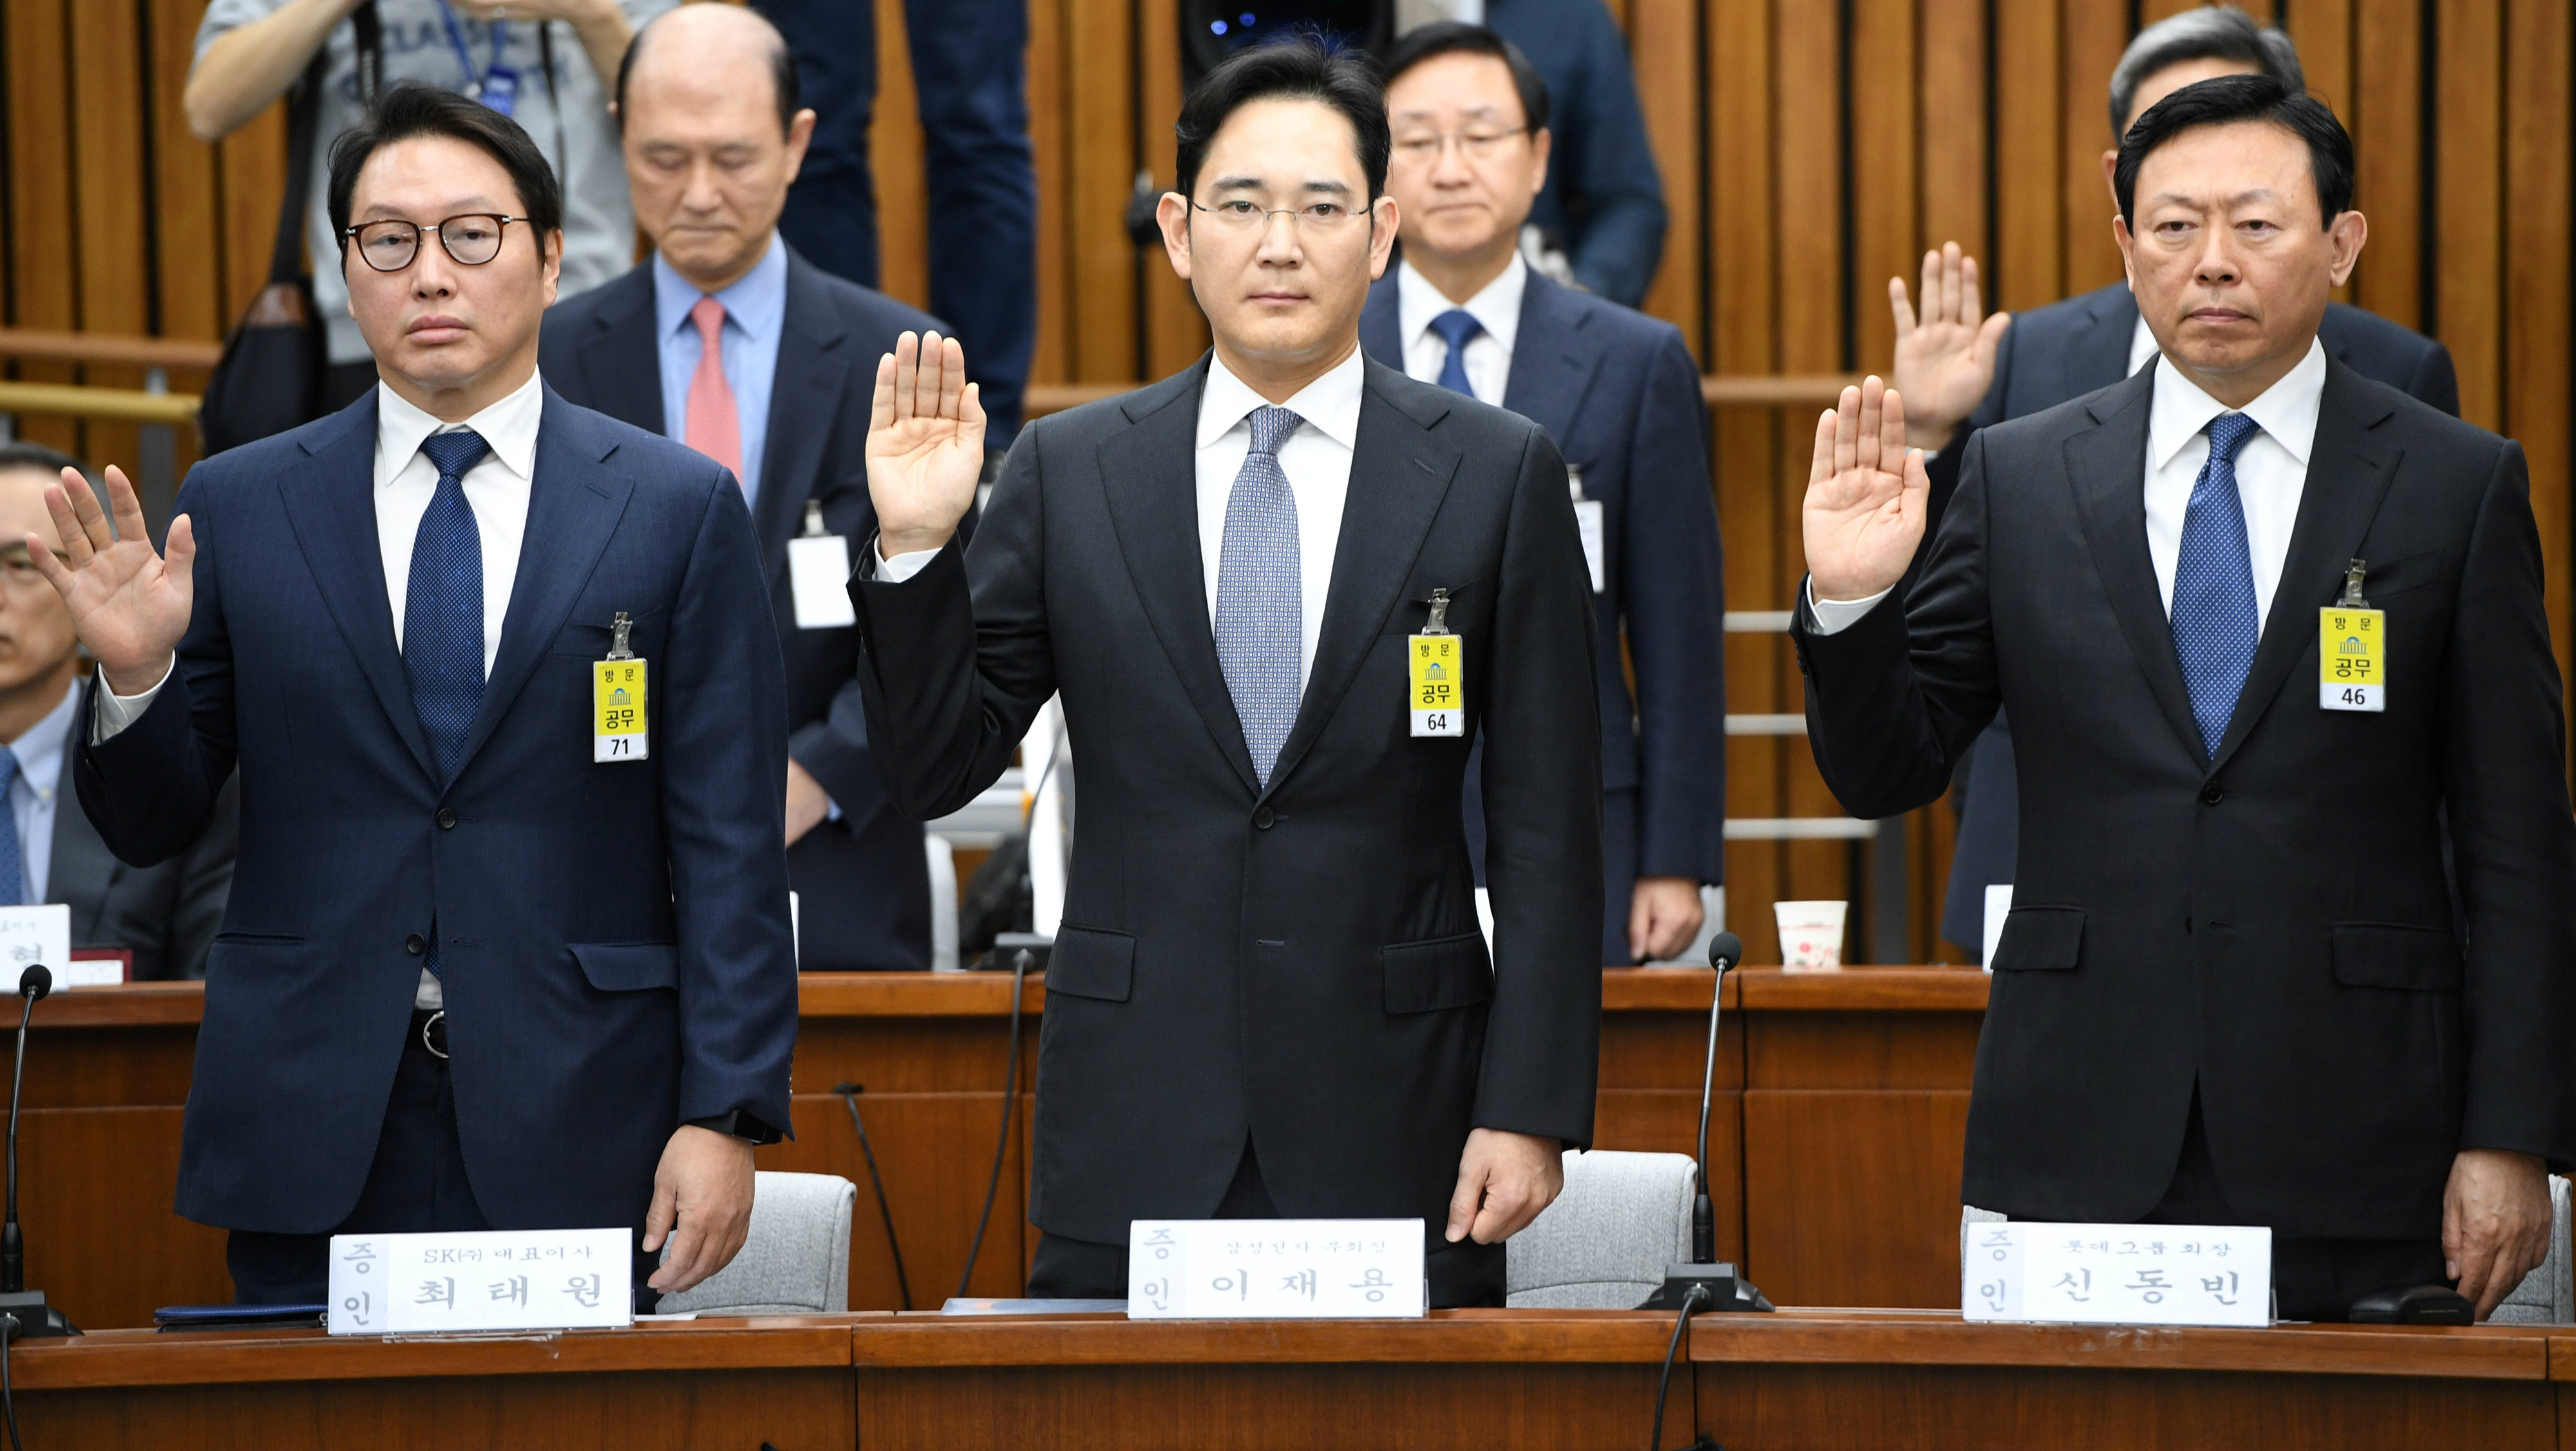 SK Group chairman Chey Tae-Won, Samsung Group's heir-apparent Lee Jae-yong and Lotte Group Chairman Shin Dong-Bin take an oath during a parliamentary probe into a scandal engulfing President Park Geun-Hye at the National Assembly in Seoul on December 6, 2016.